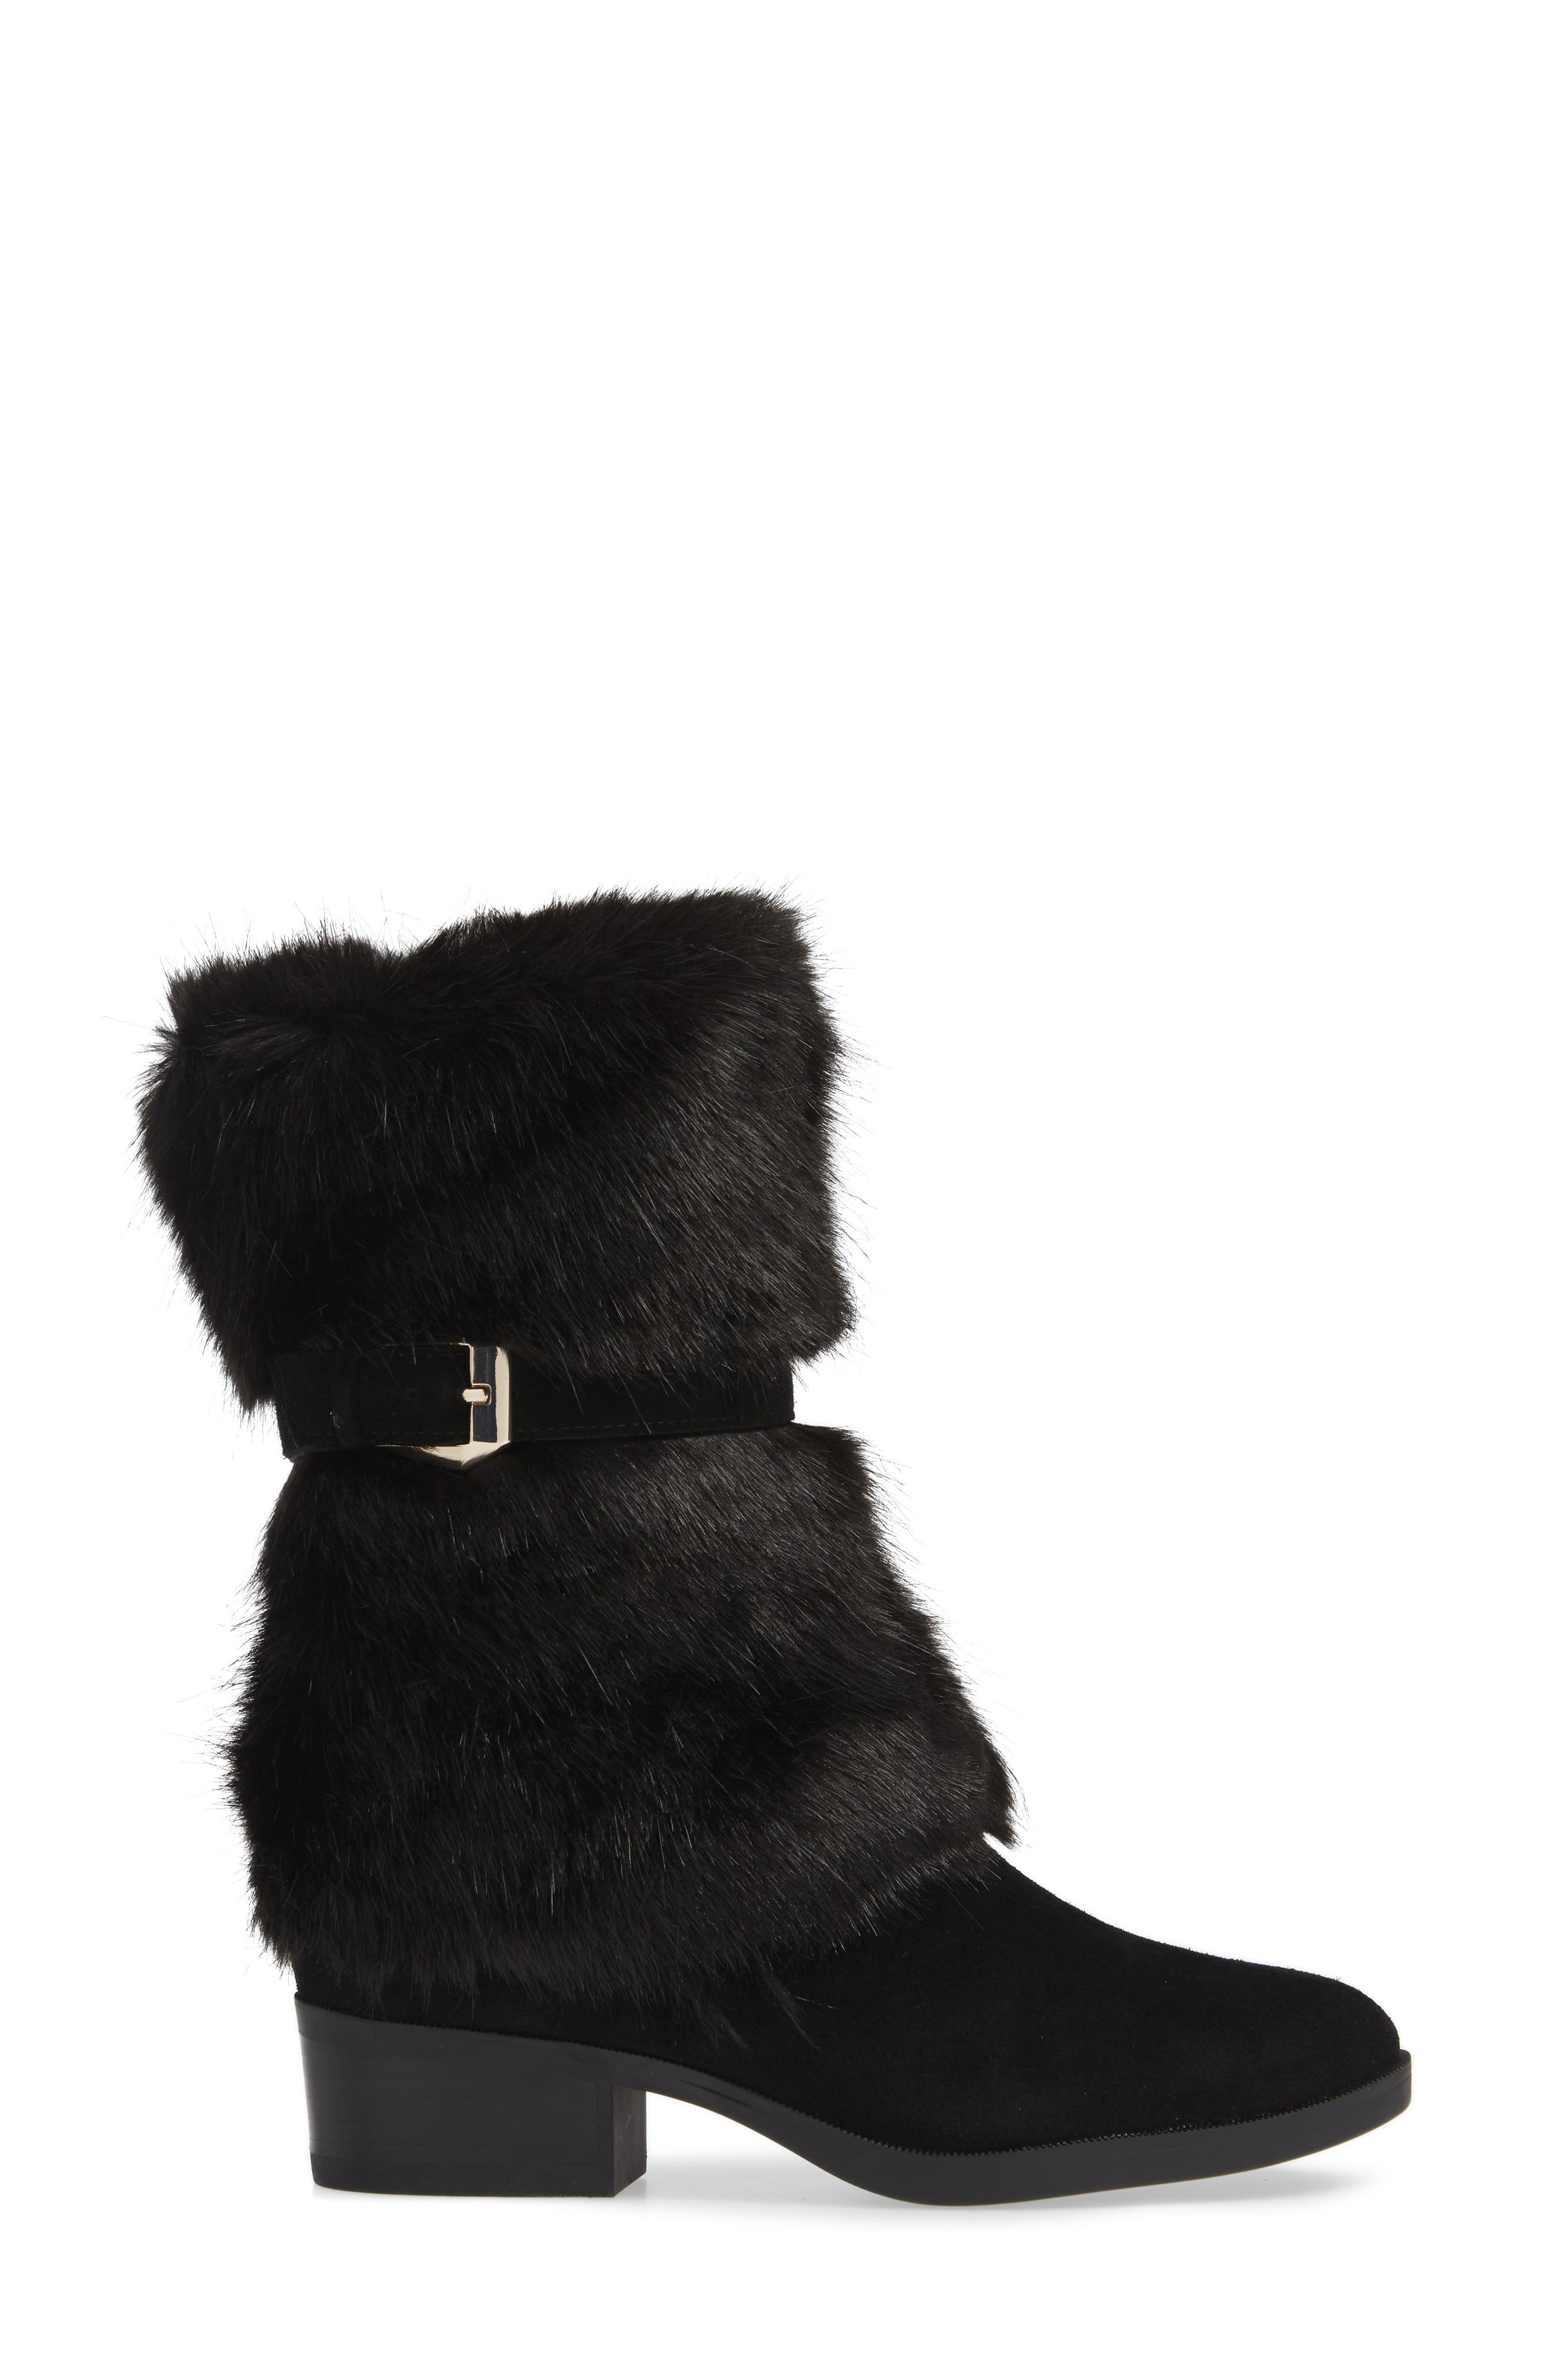 TARYN ROSE, Giselle Water Resistant Faux Fur Boot, Alternate thumbnail 3, color, BLACK SUEDE